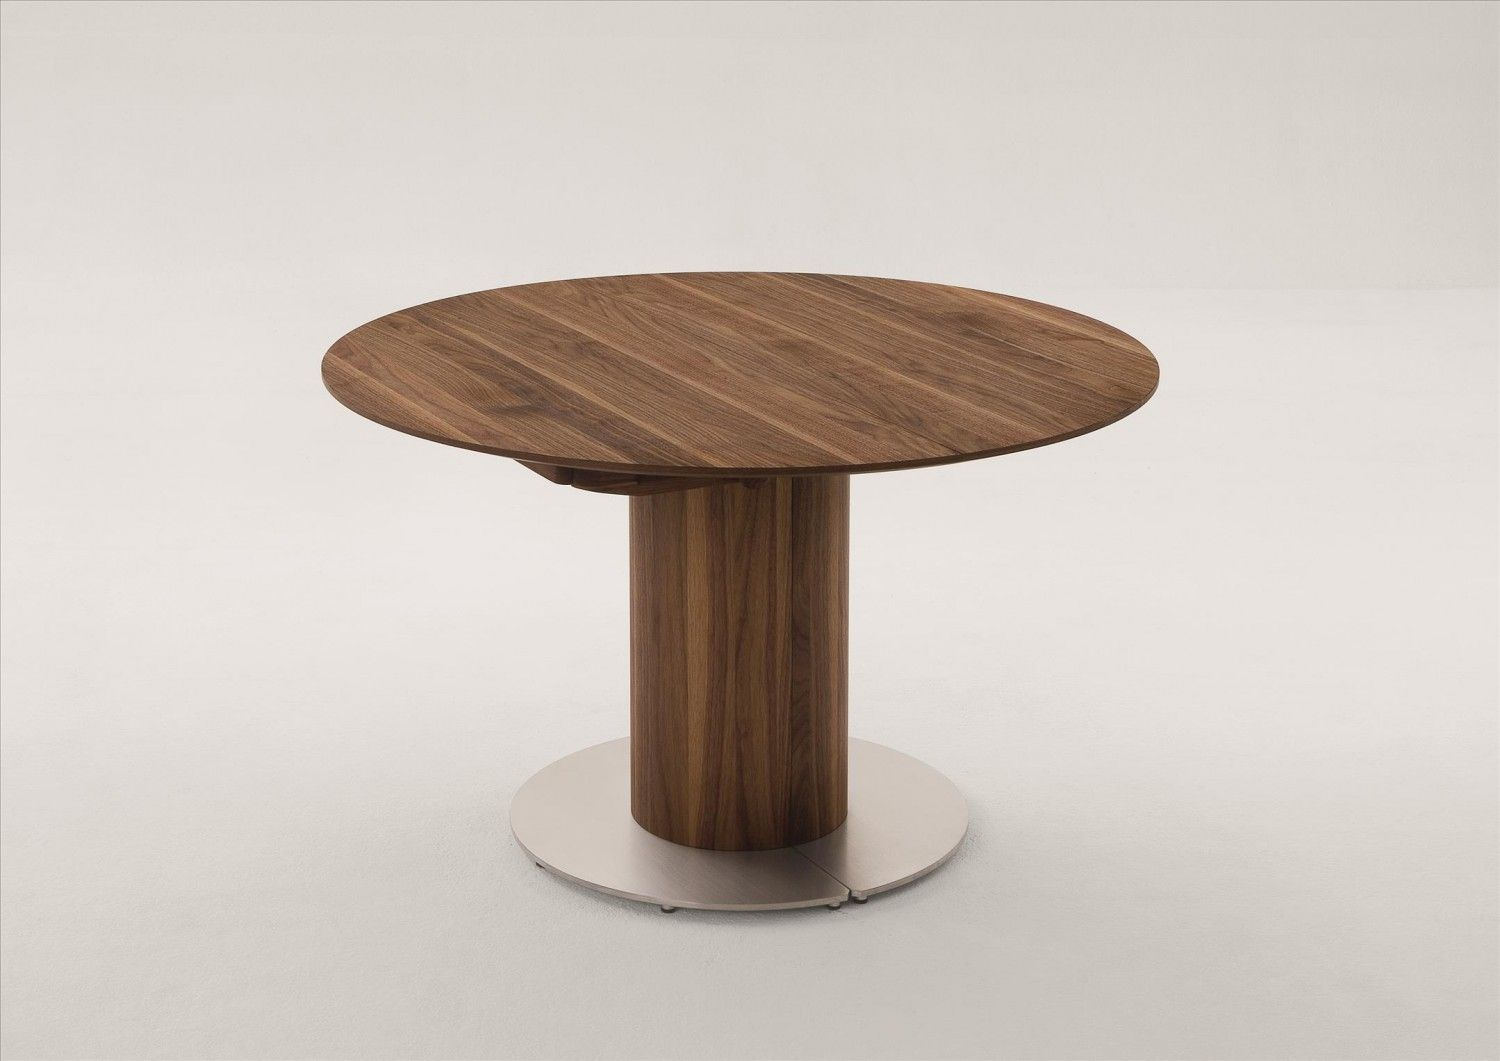 2839 Round Dining Table Extendable Venjakob Round Dining